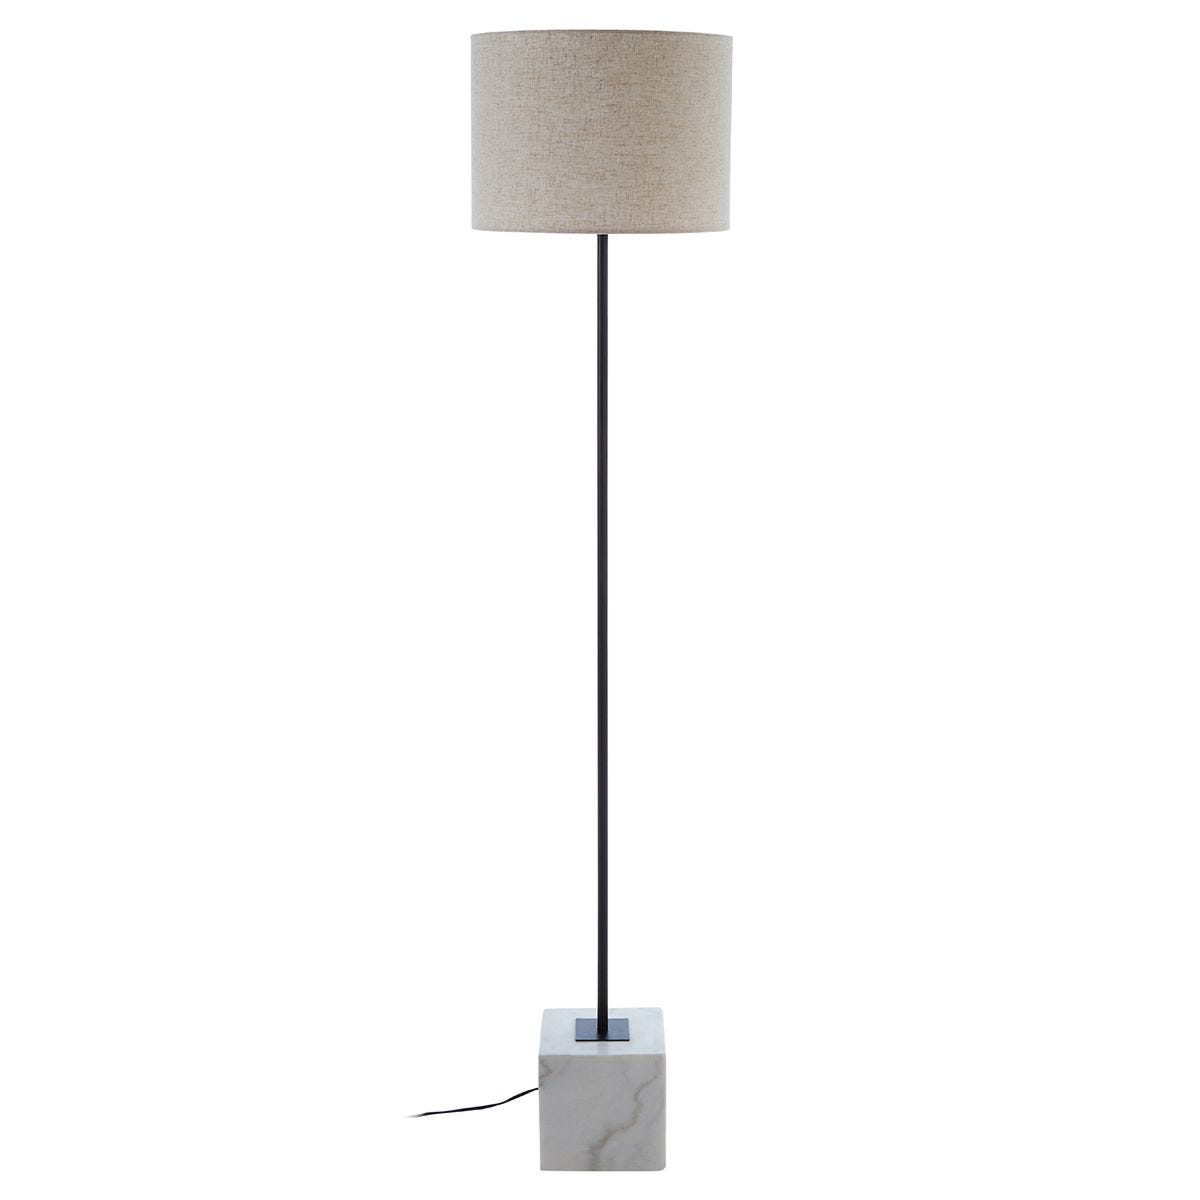 Premier Housewares Murdoch Floor Lamp with Marble Base & Linen Shade